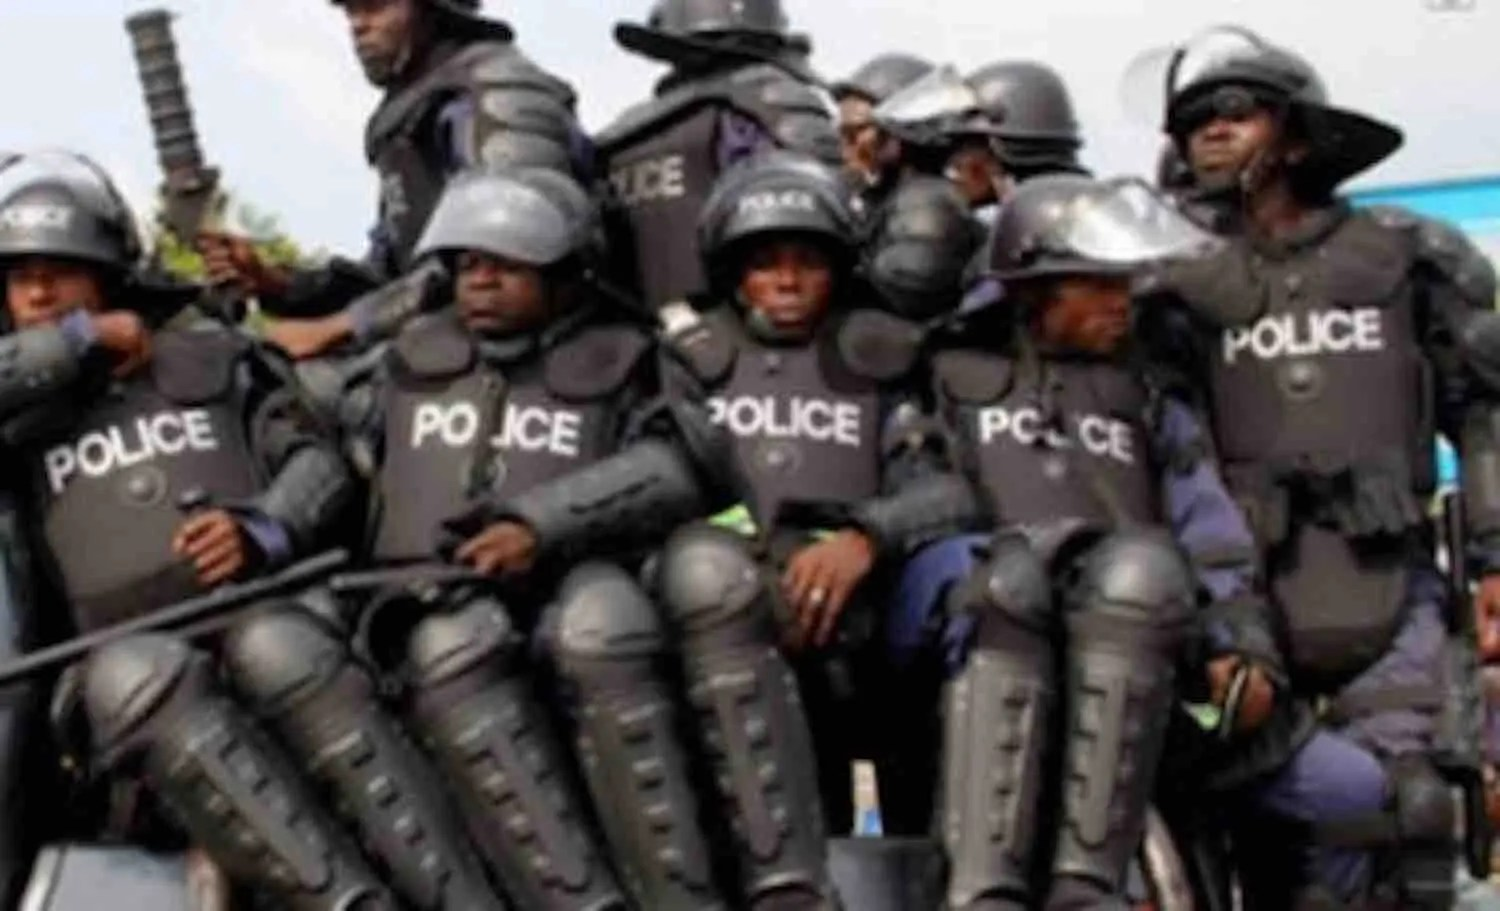 Man mercilessly beats policewoman who came to arrest him - Vanguard